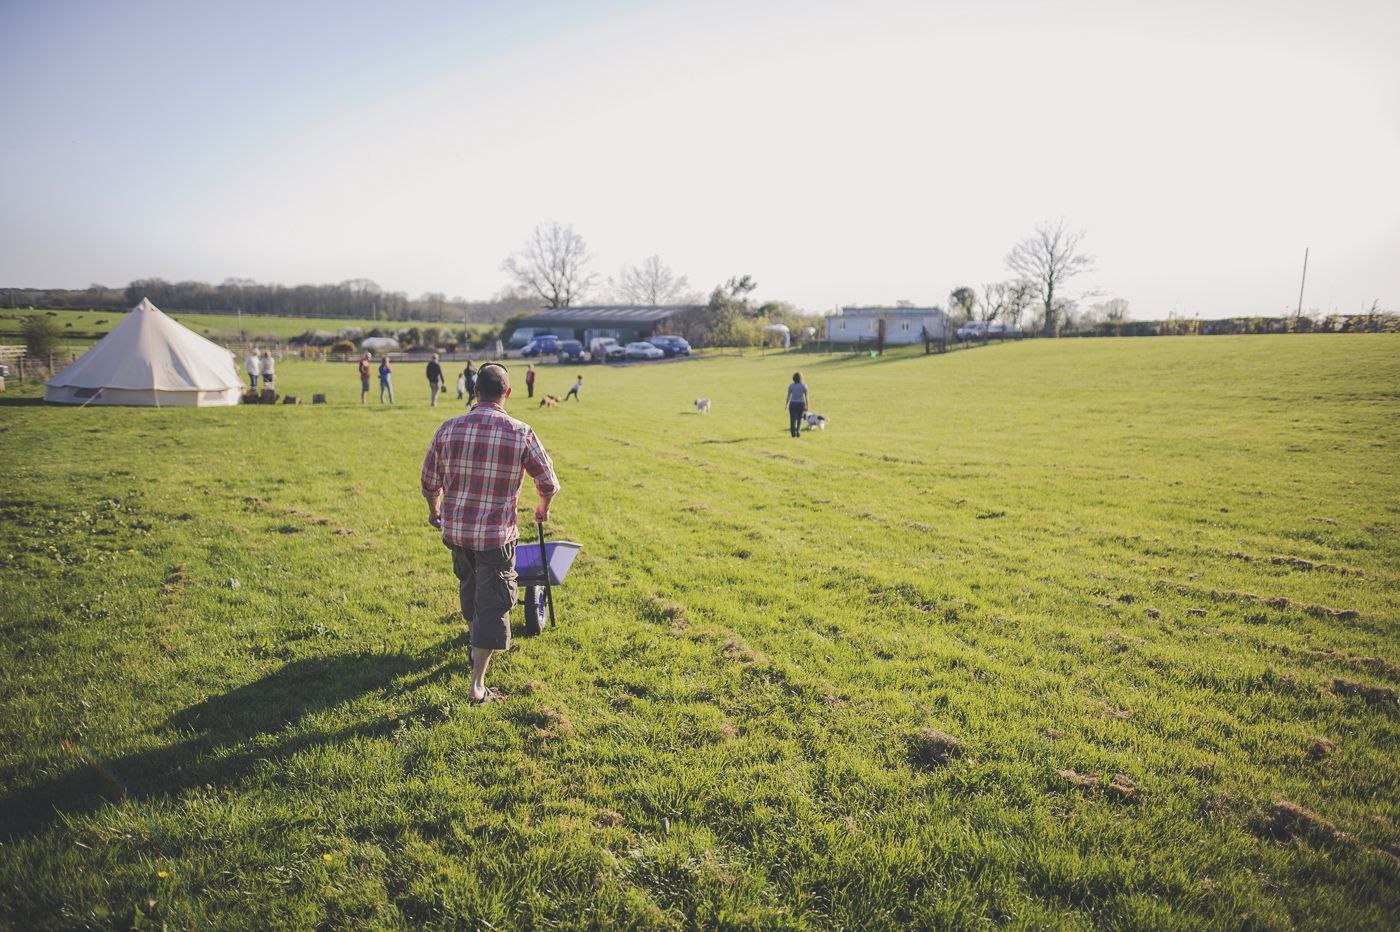 Campsites in Pembroke holidays at I Love This Campsite